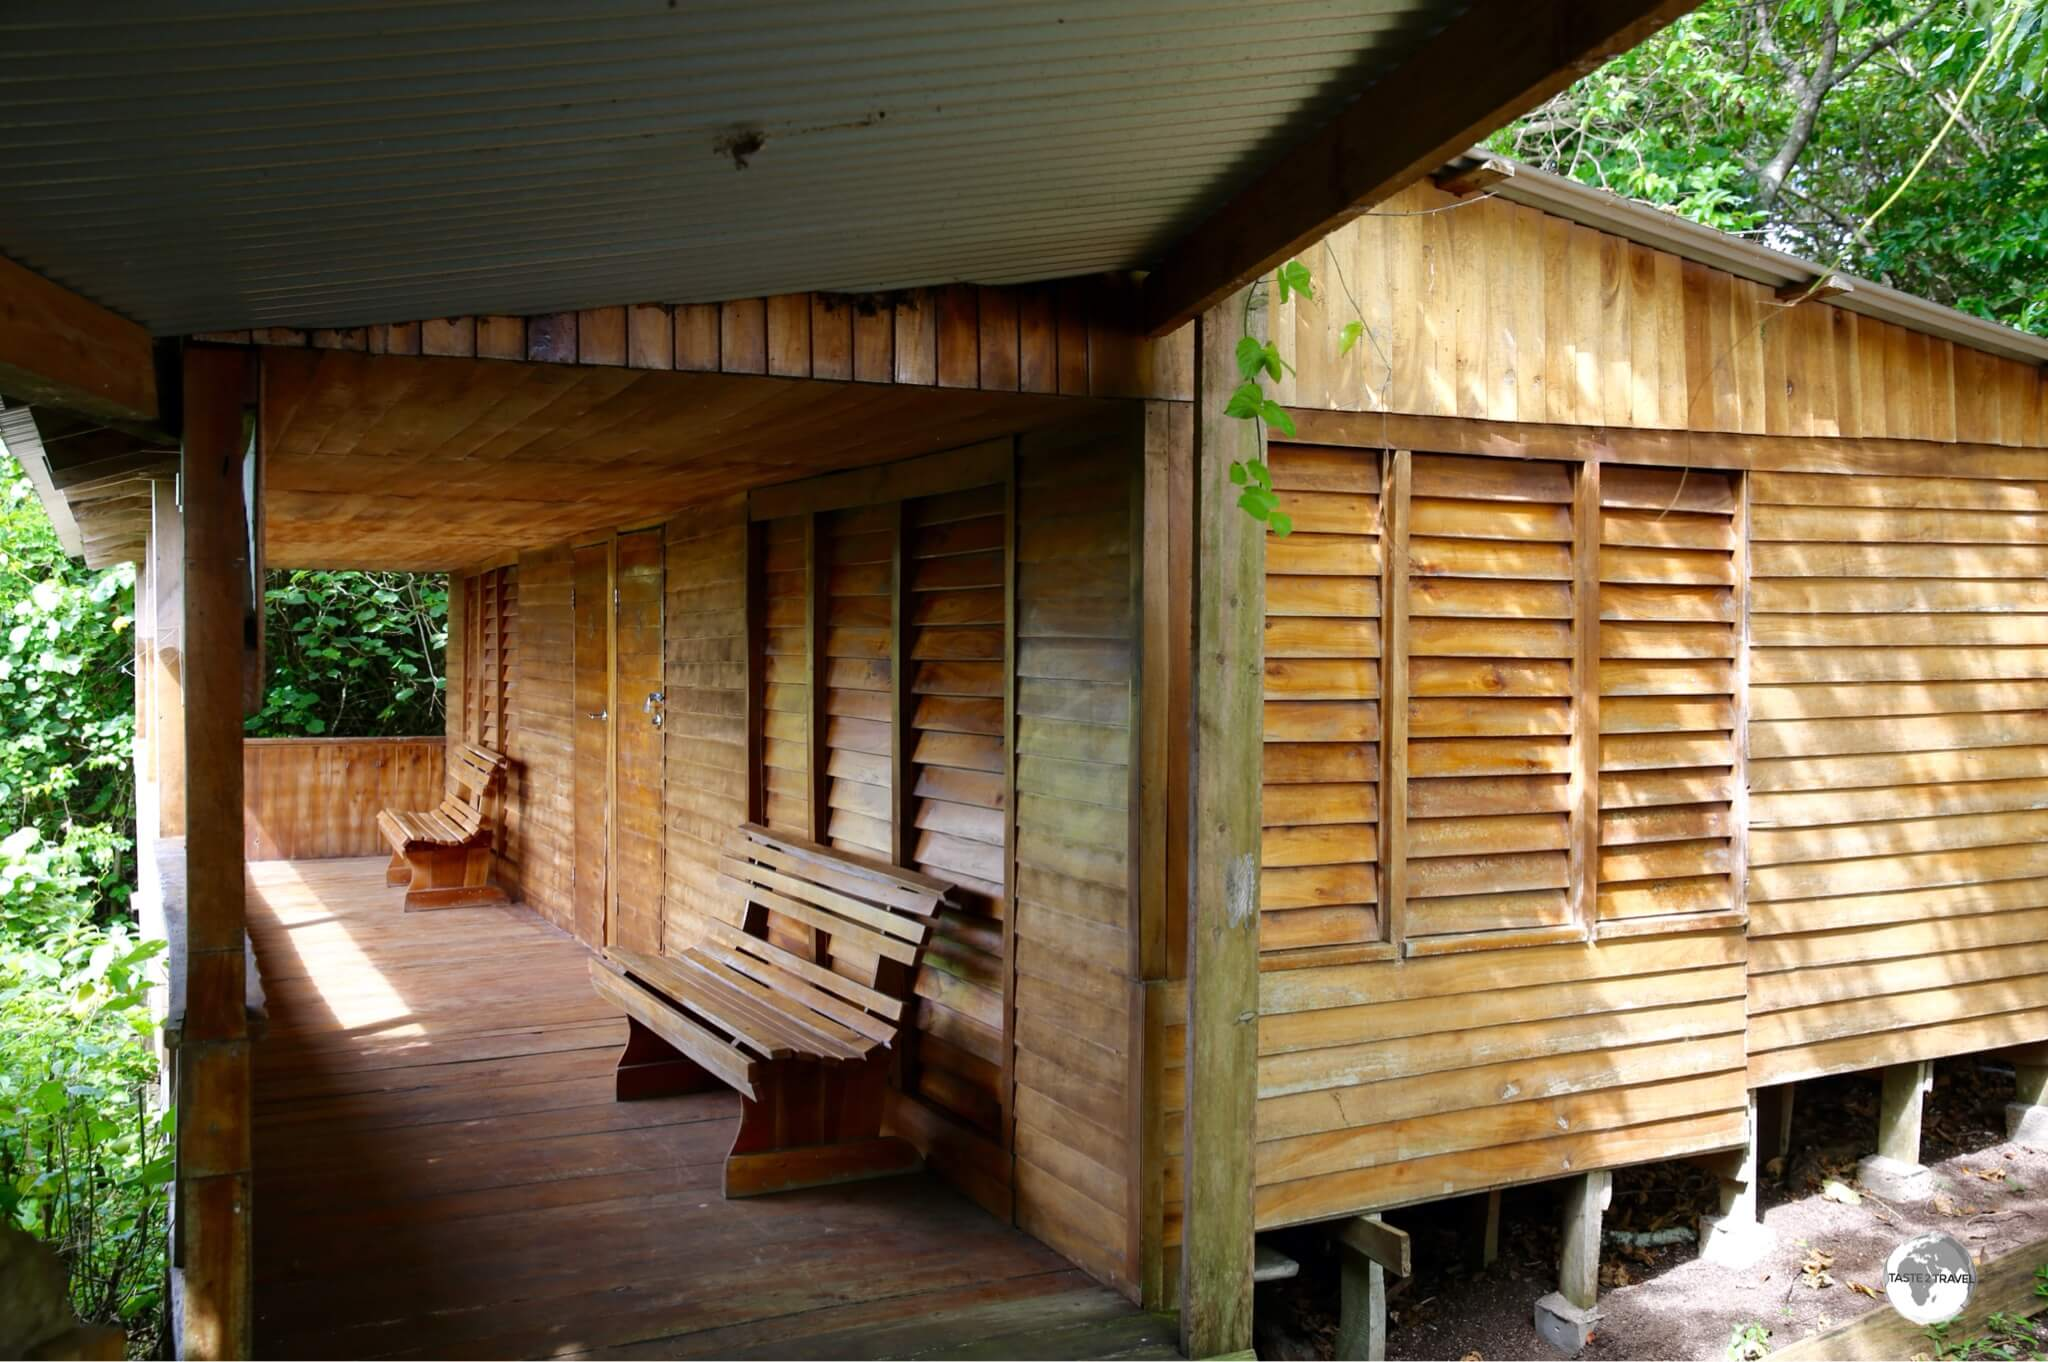 Ovava Tree Lodge features wooden 'Fales' in a lush garden setting.